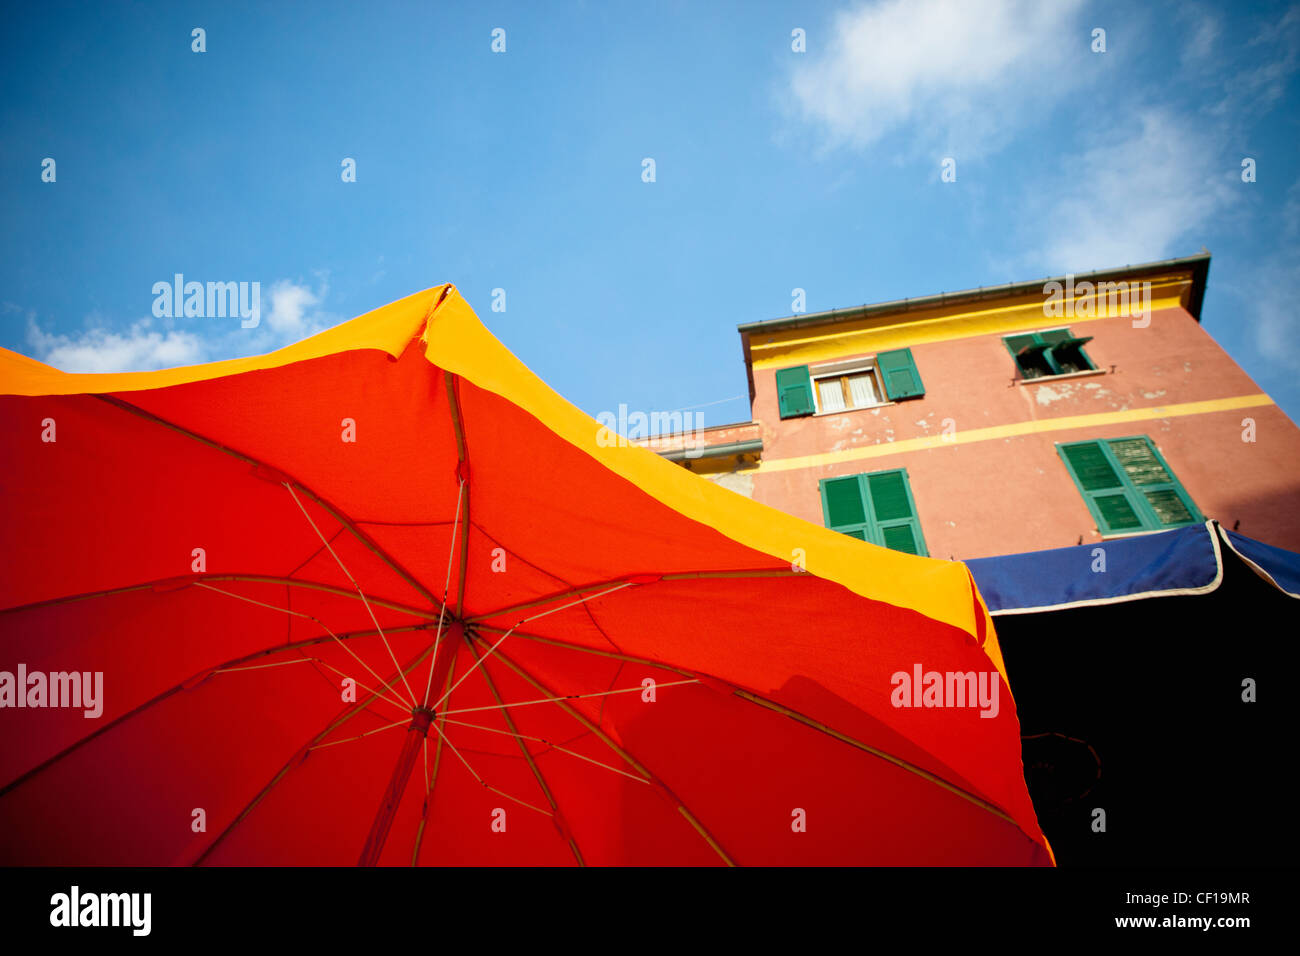 Yellow And Bbue Patio Umbrellas Below A Building; Vernazza Liguria Italy - Stock Image